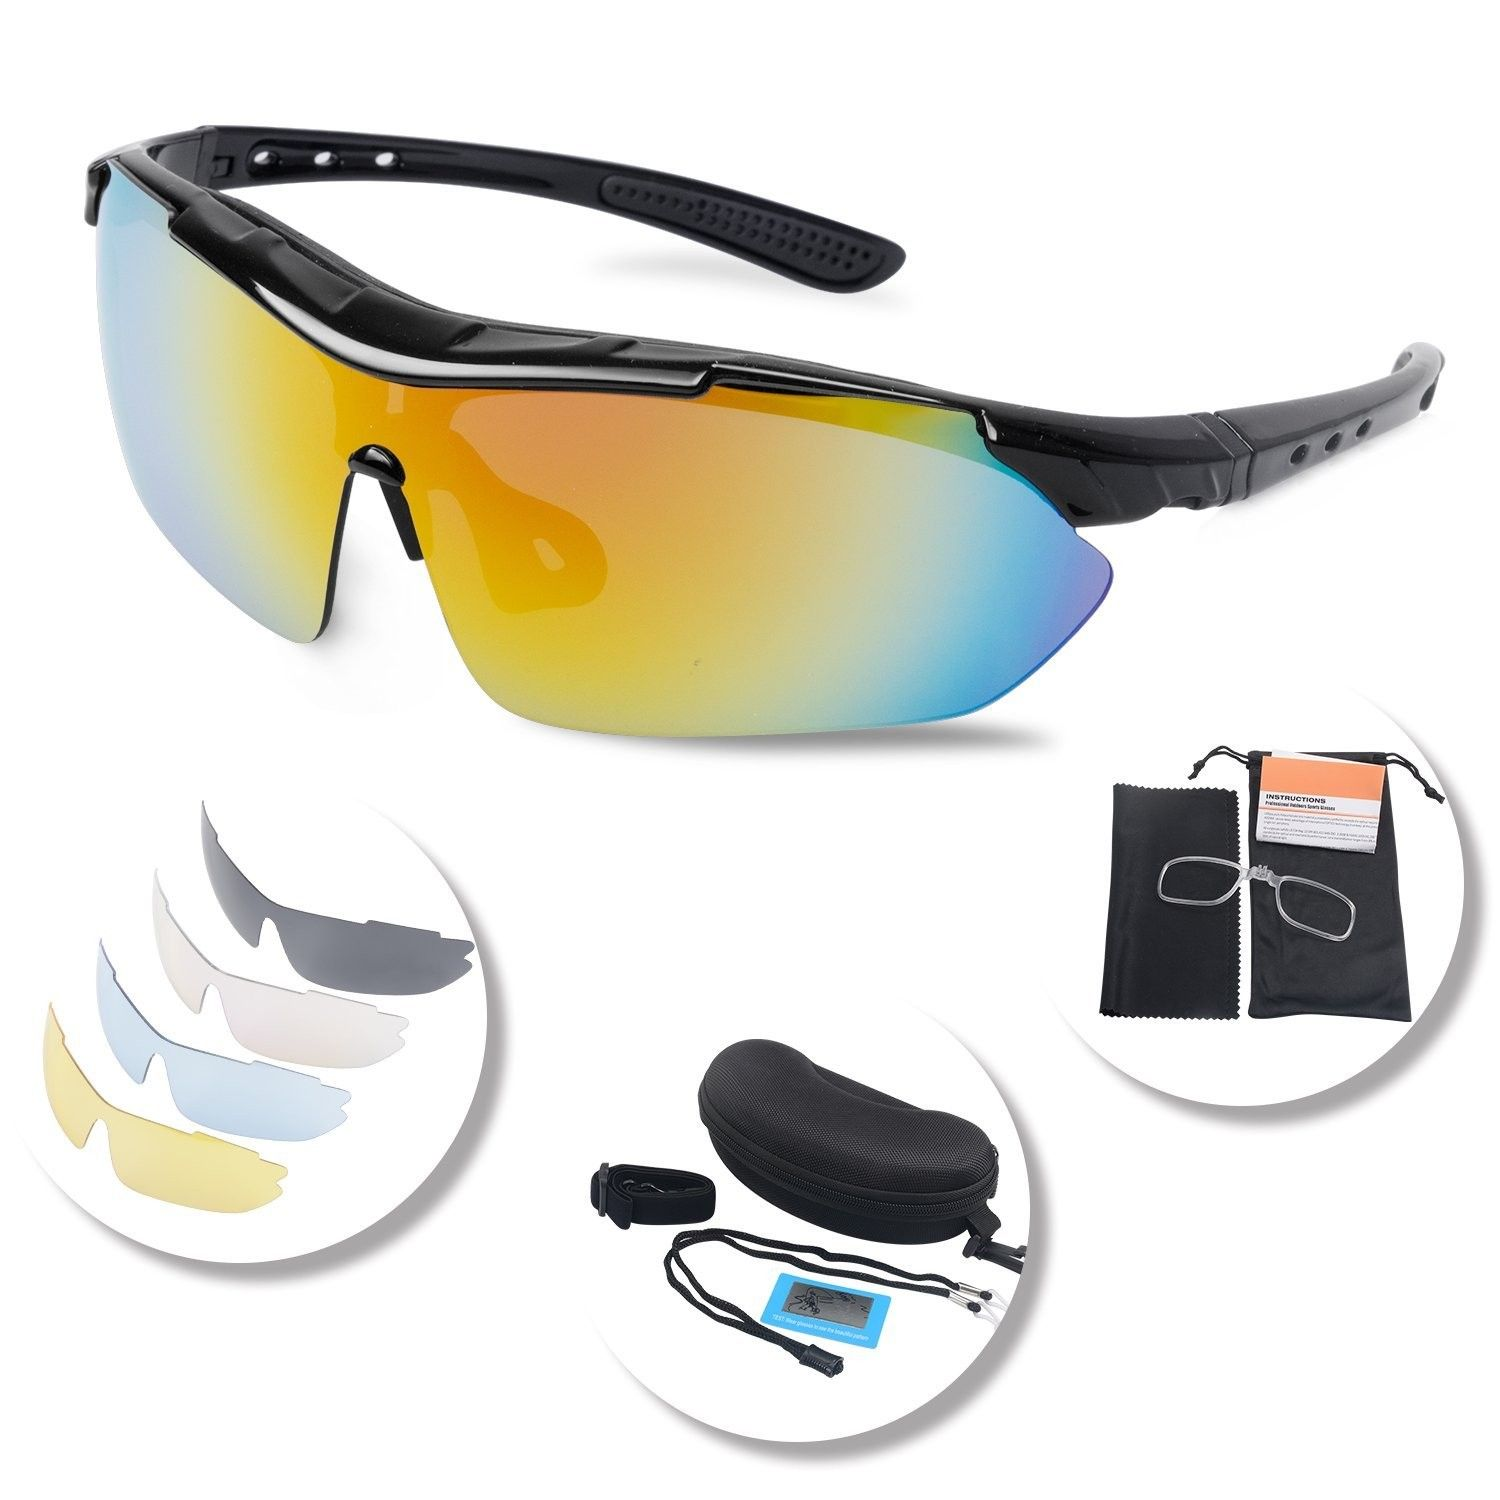 e7a0bc453a Polarized Sunglasses Interchangeable Protection - Black -  CE188ENOOWS-Women s Sunglasses